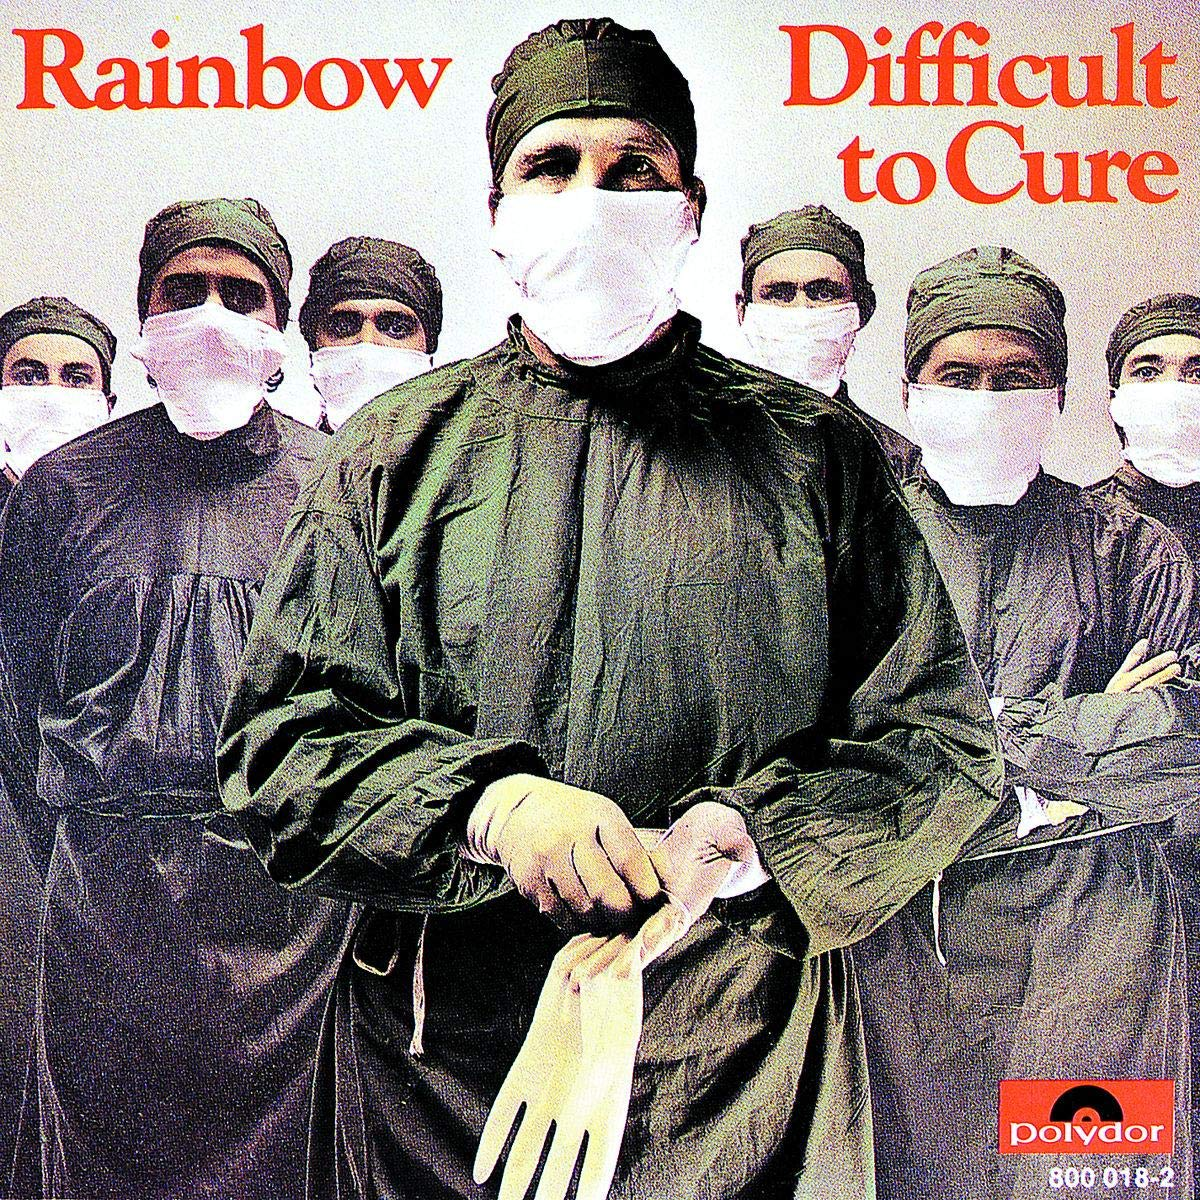 Rainbow/Difficult To Cure [CD]